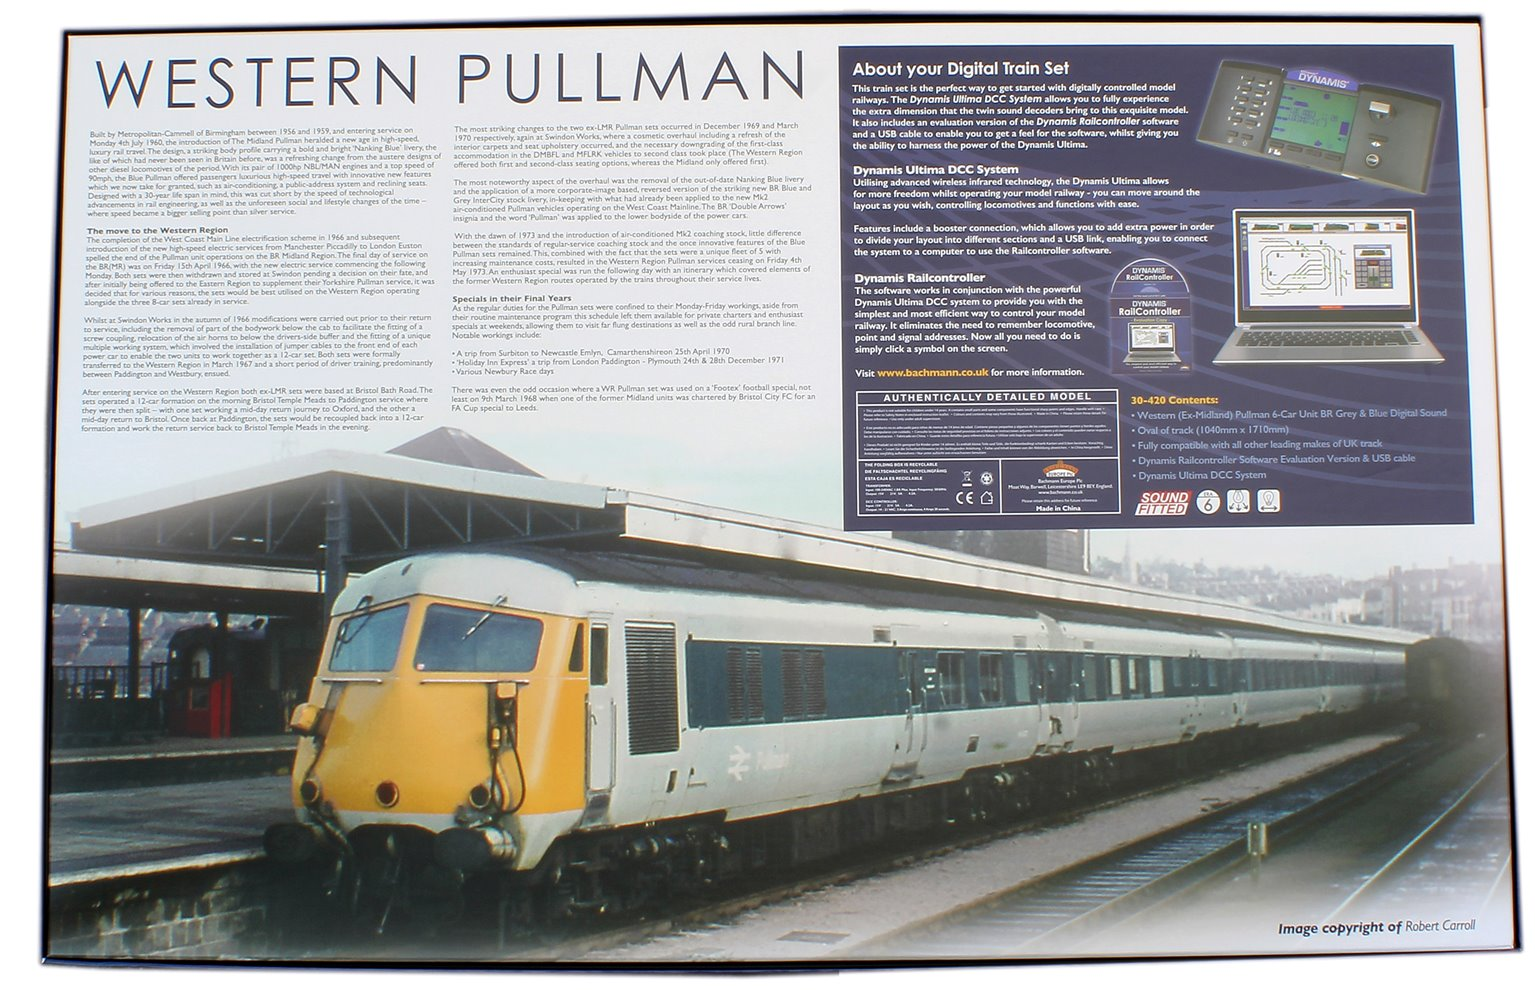 Western Pullman Dynamis Ultima Digital Sound Train Set in Grey/Blue British Rail Pullman livery